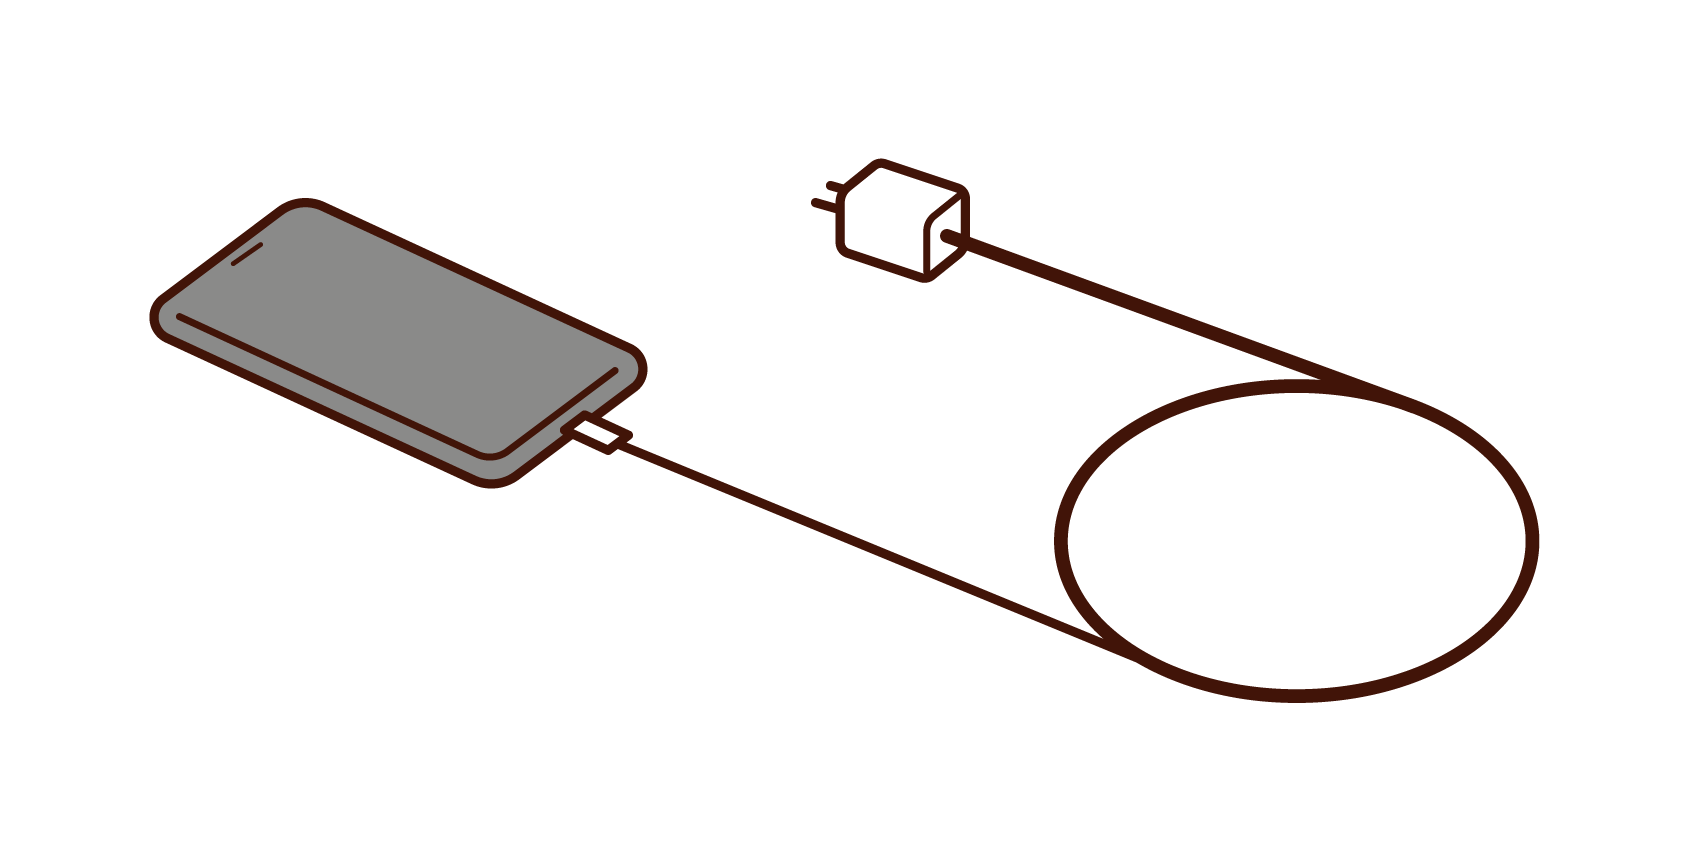 Illustration of smartphone and charging cable